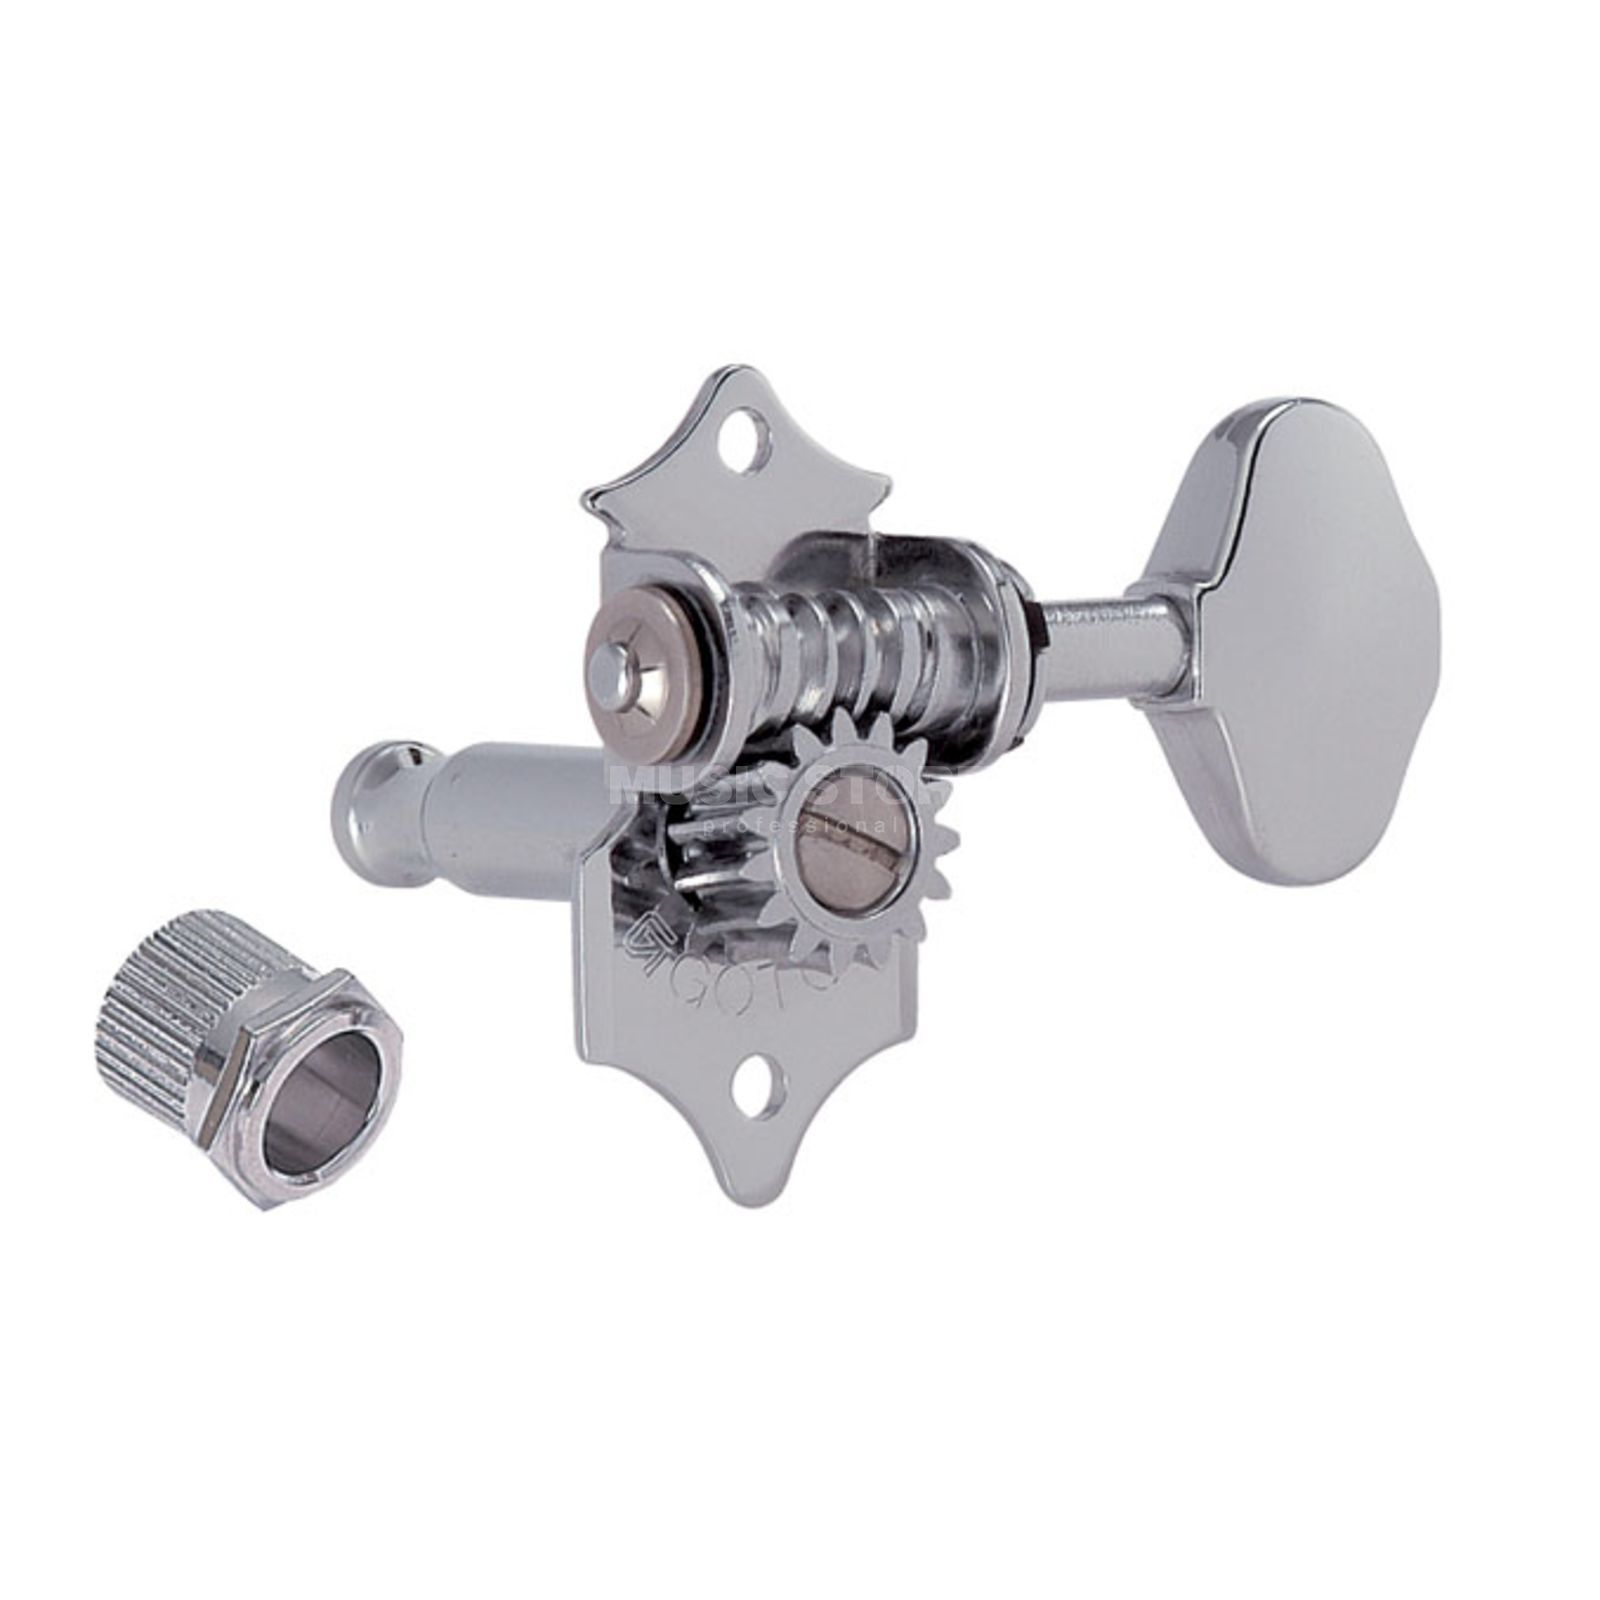 Gotoh SE-770 Mechanik N 3L 3R06M Button nickel Produktbild